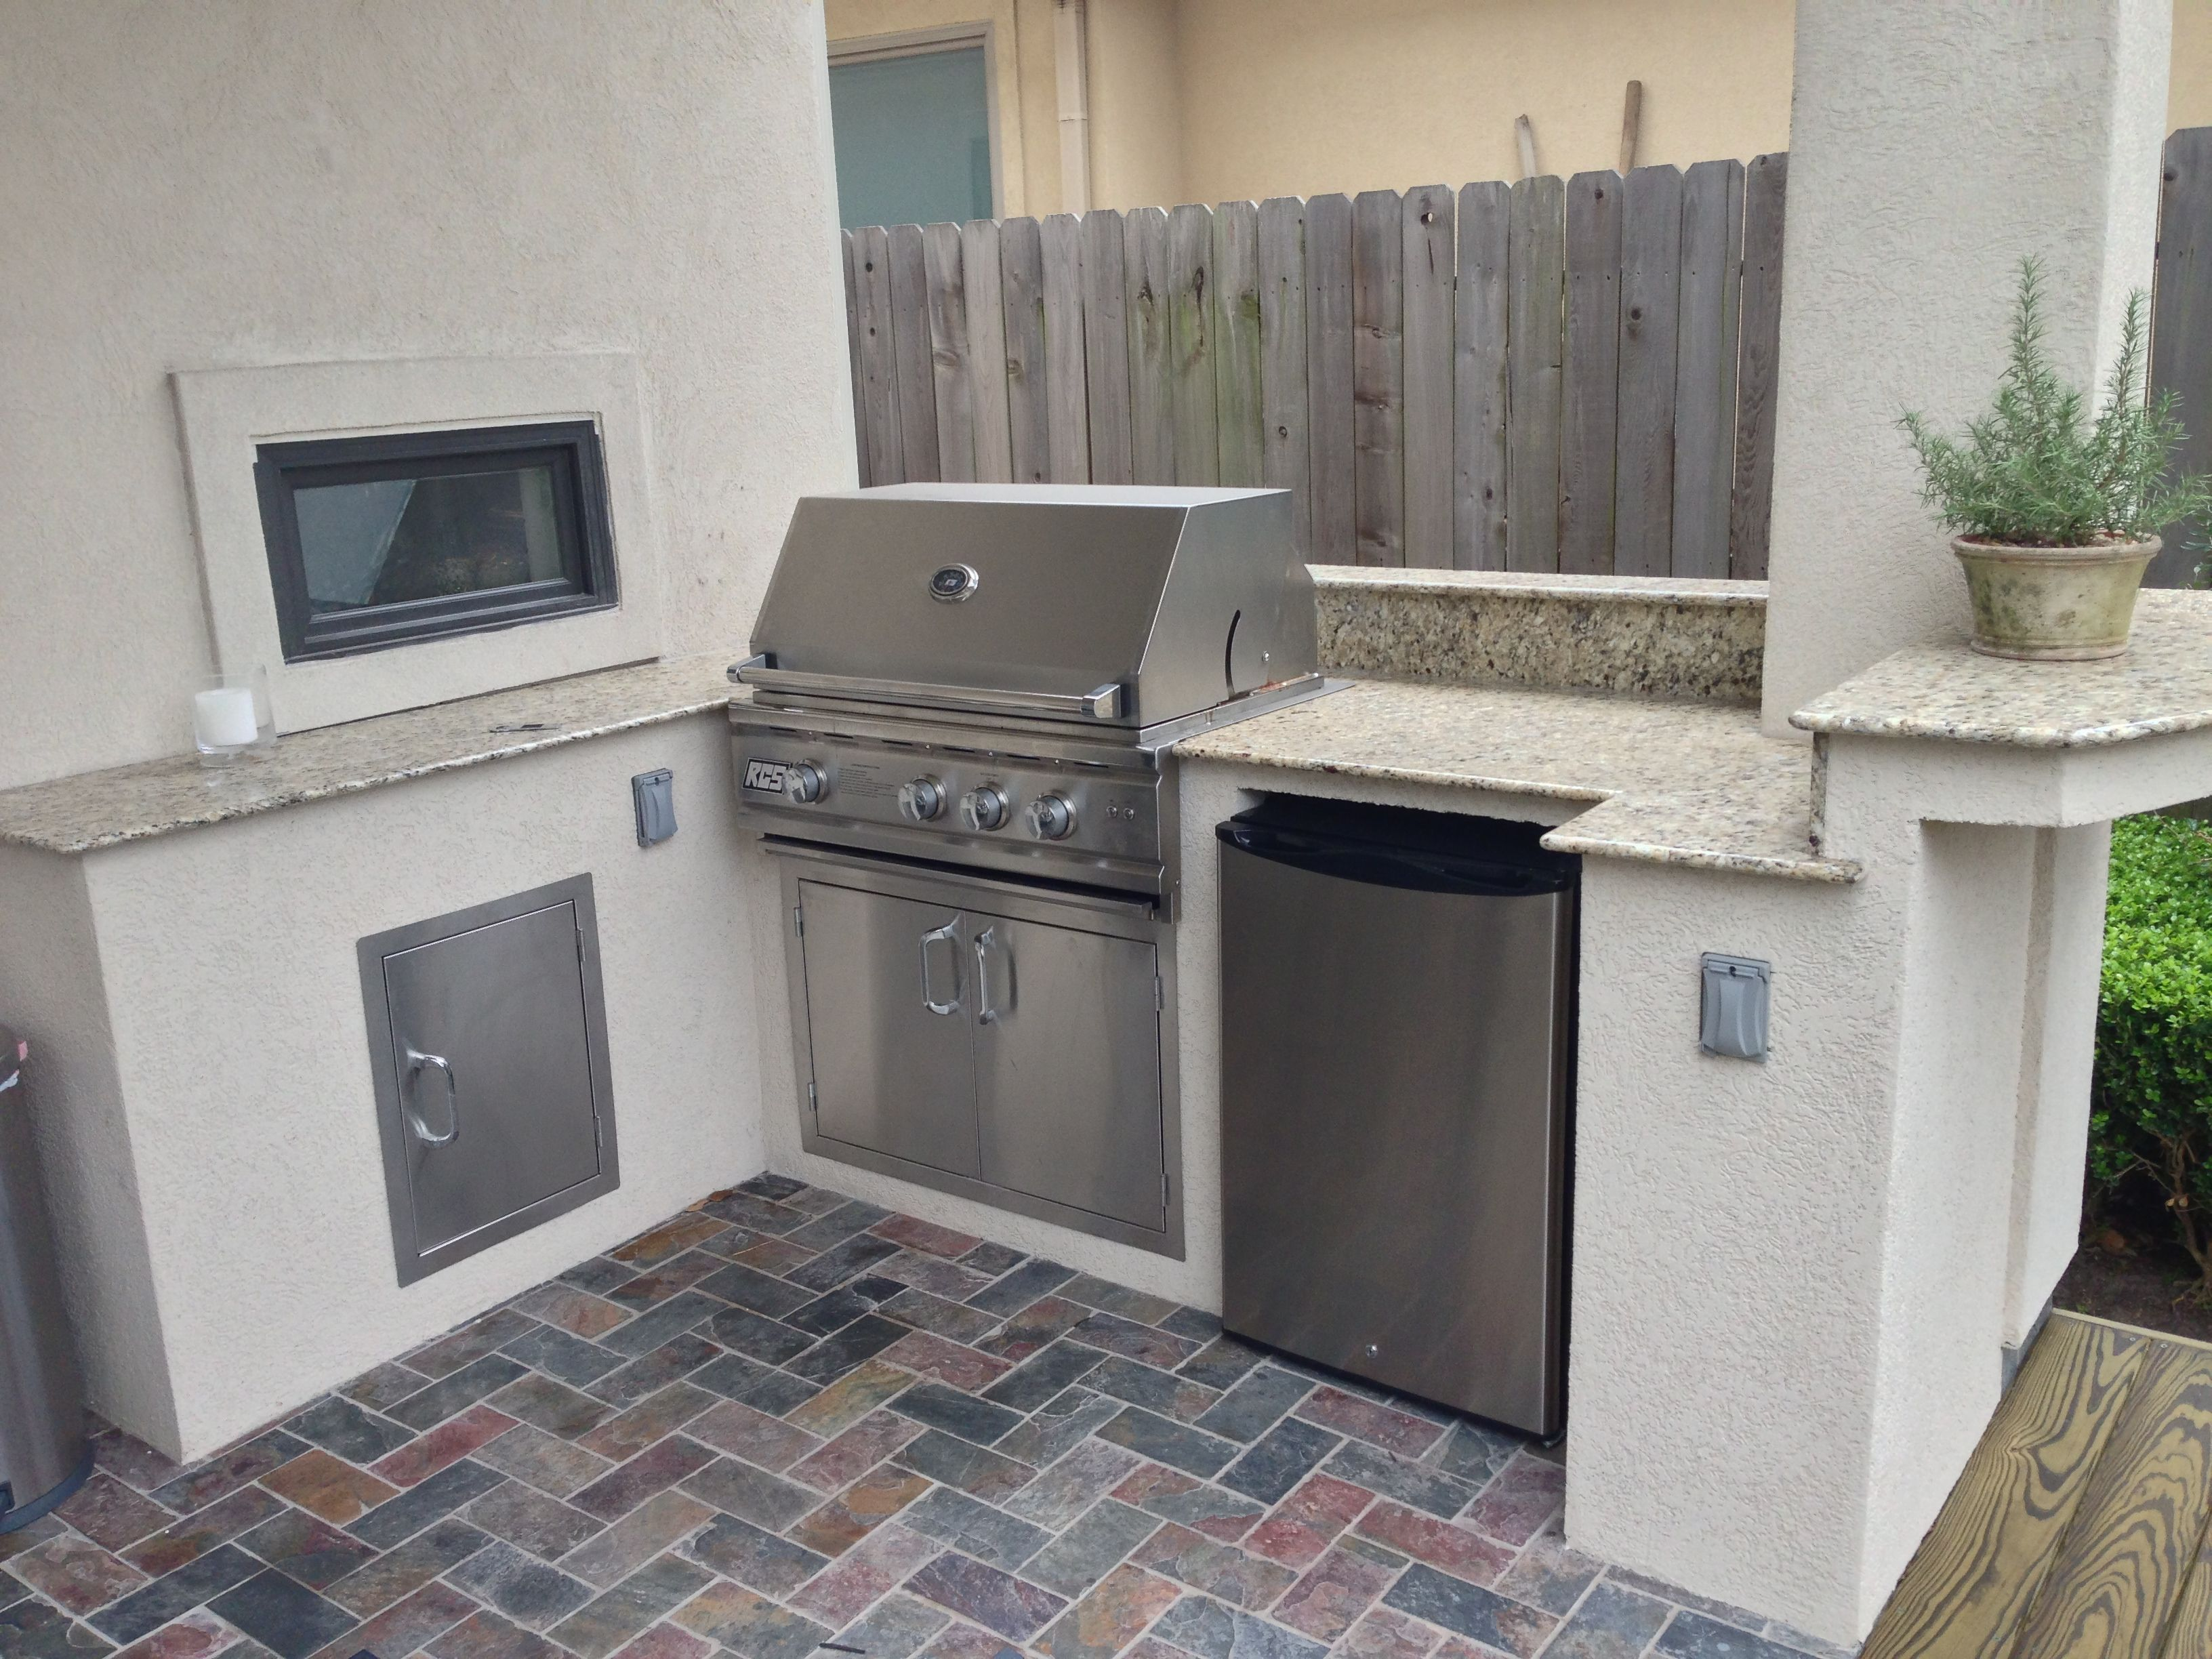 Small Outdoor Kitchen Custom Stucco Outdoor Kitchen With A Small Raised Counter For Bar